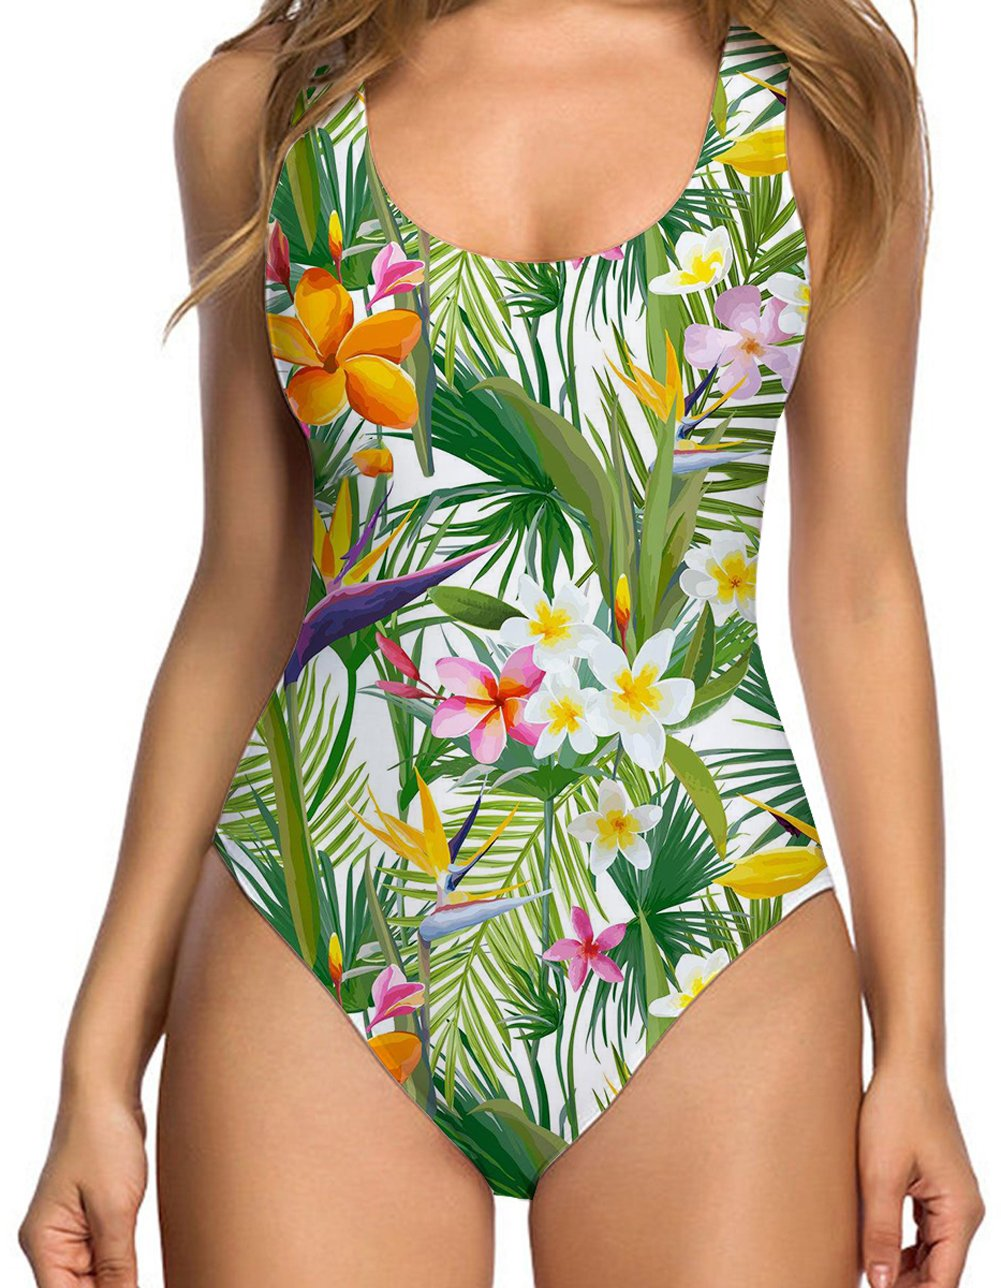 b4c4df03db21a Galleon - RAISEVERN Women's Tropical Floral Hawaii Cut One Piece Swimsuit  3D Cool Printed Colorful Pro Swimsuits Bathing Suit Swimwear